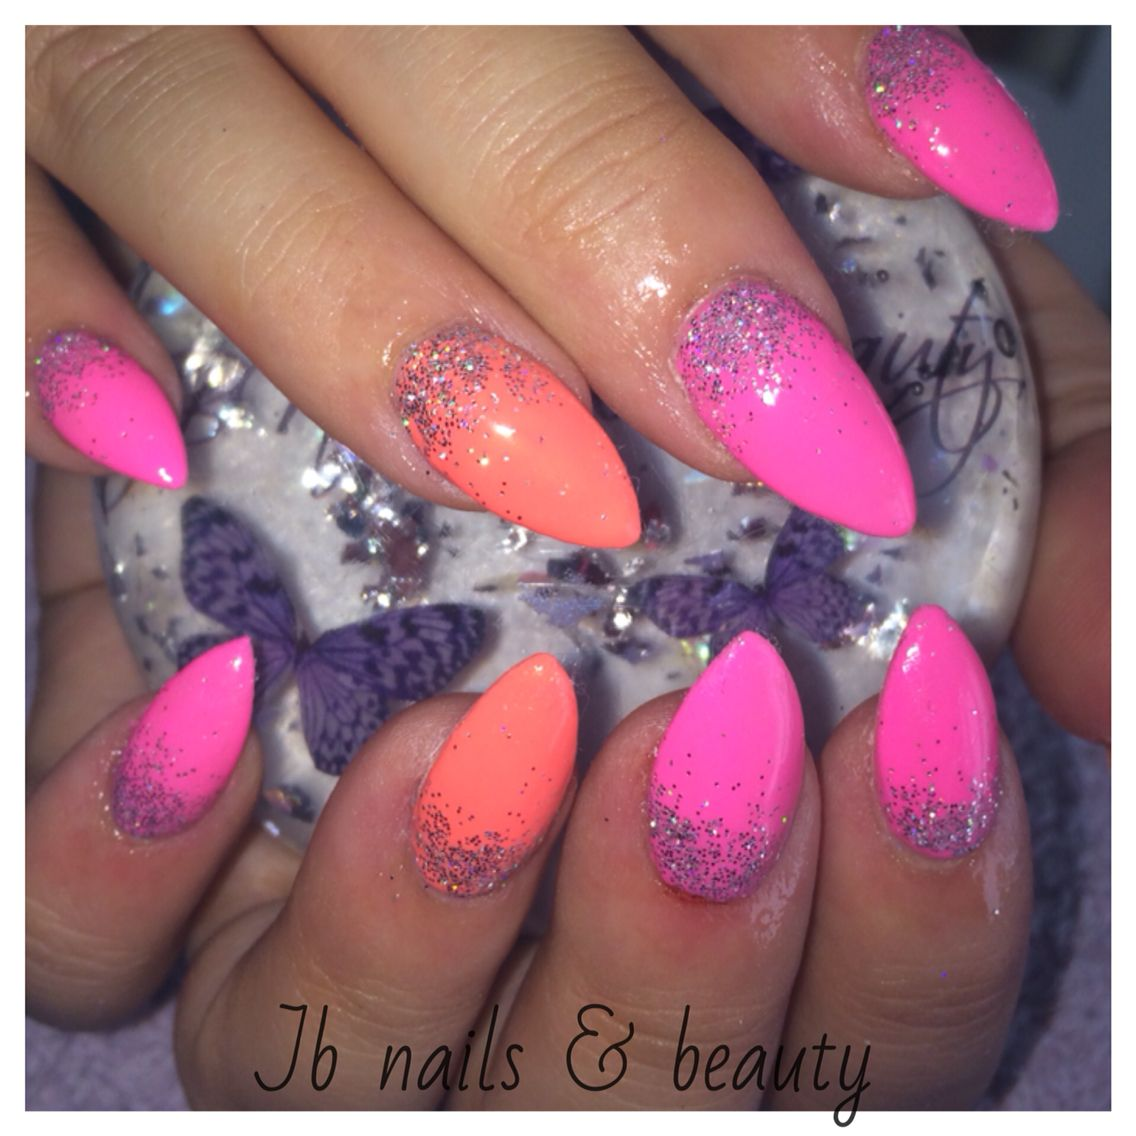 Bright Pink & Coral Nails With Silver Glitter